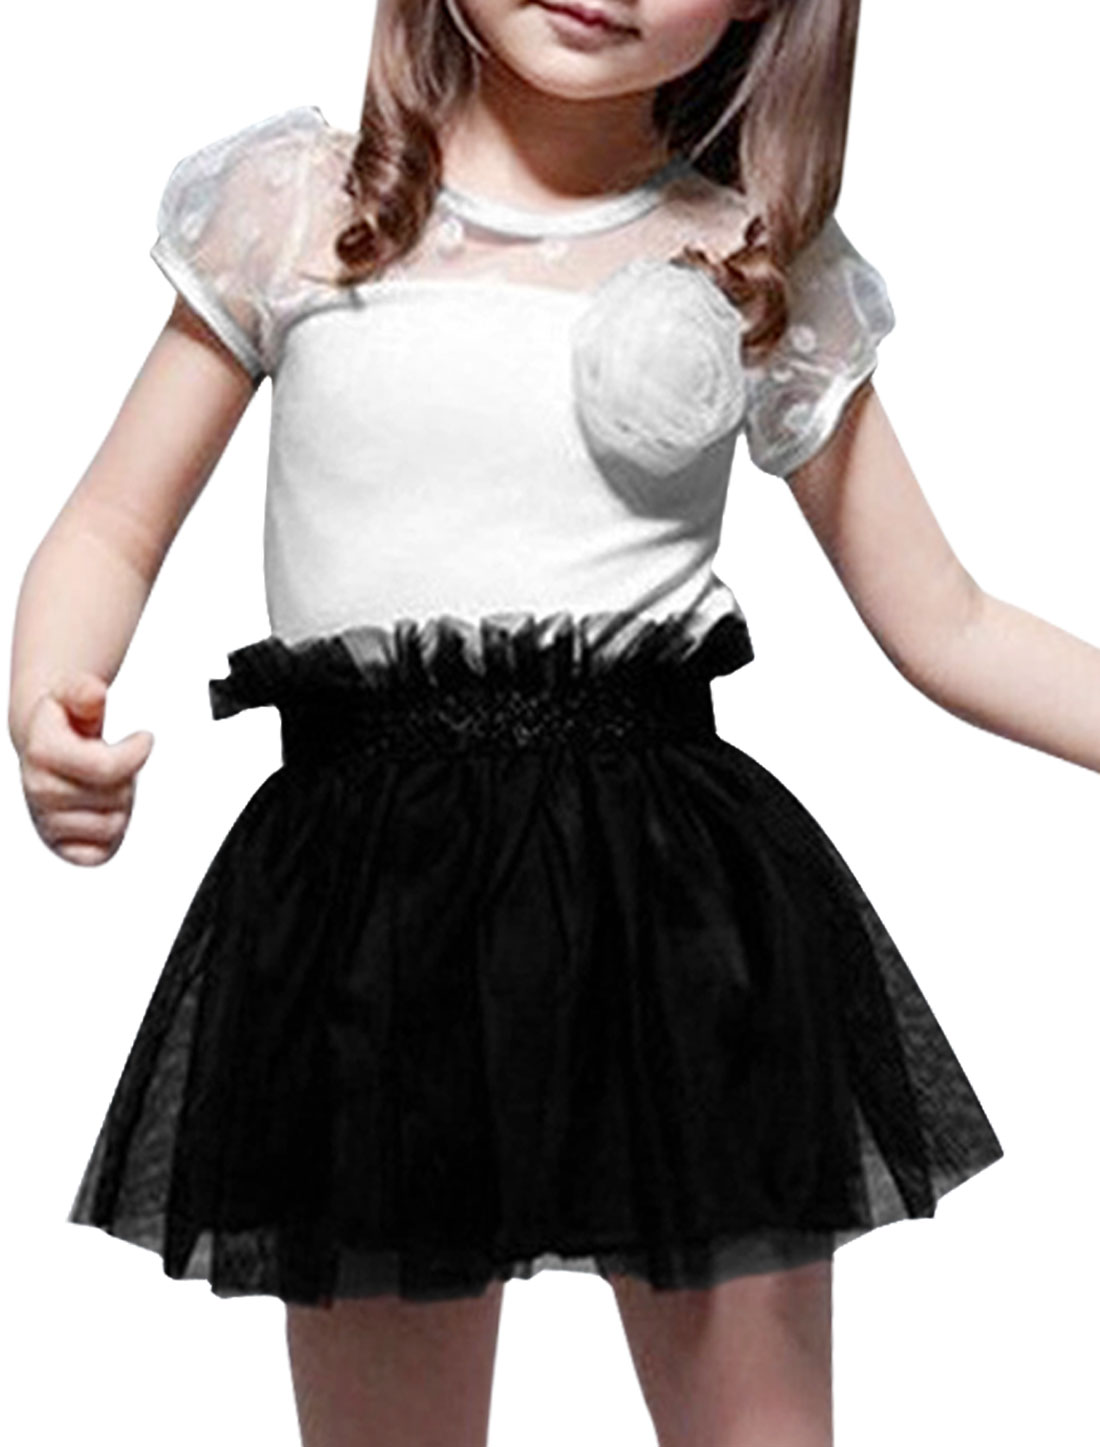 Girls Stretchy Waist Semi Sheer Two Tone Round Hem Dress 4T Black White